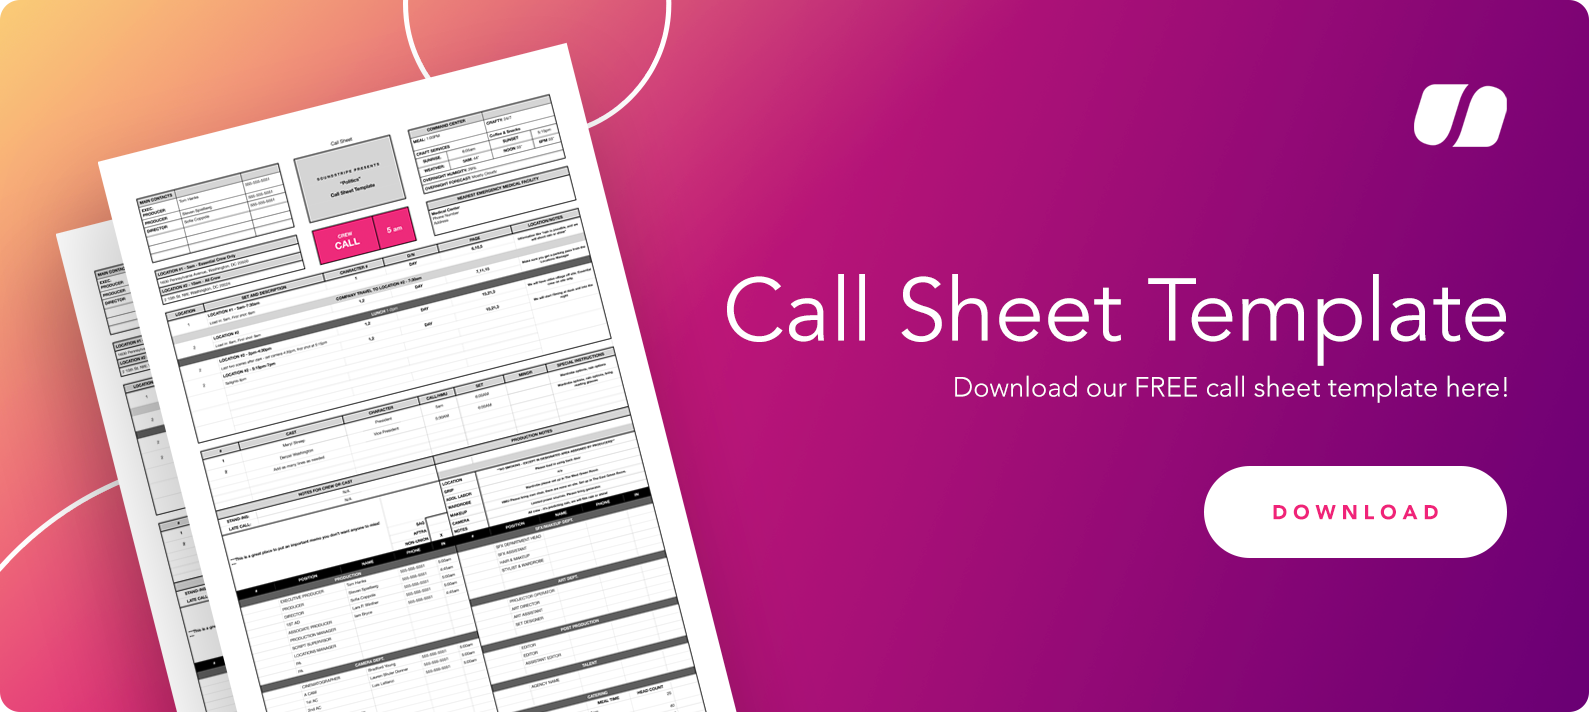 Call Sheet Template download